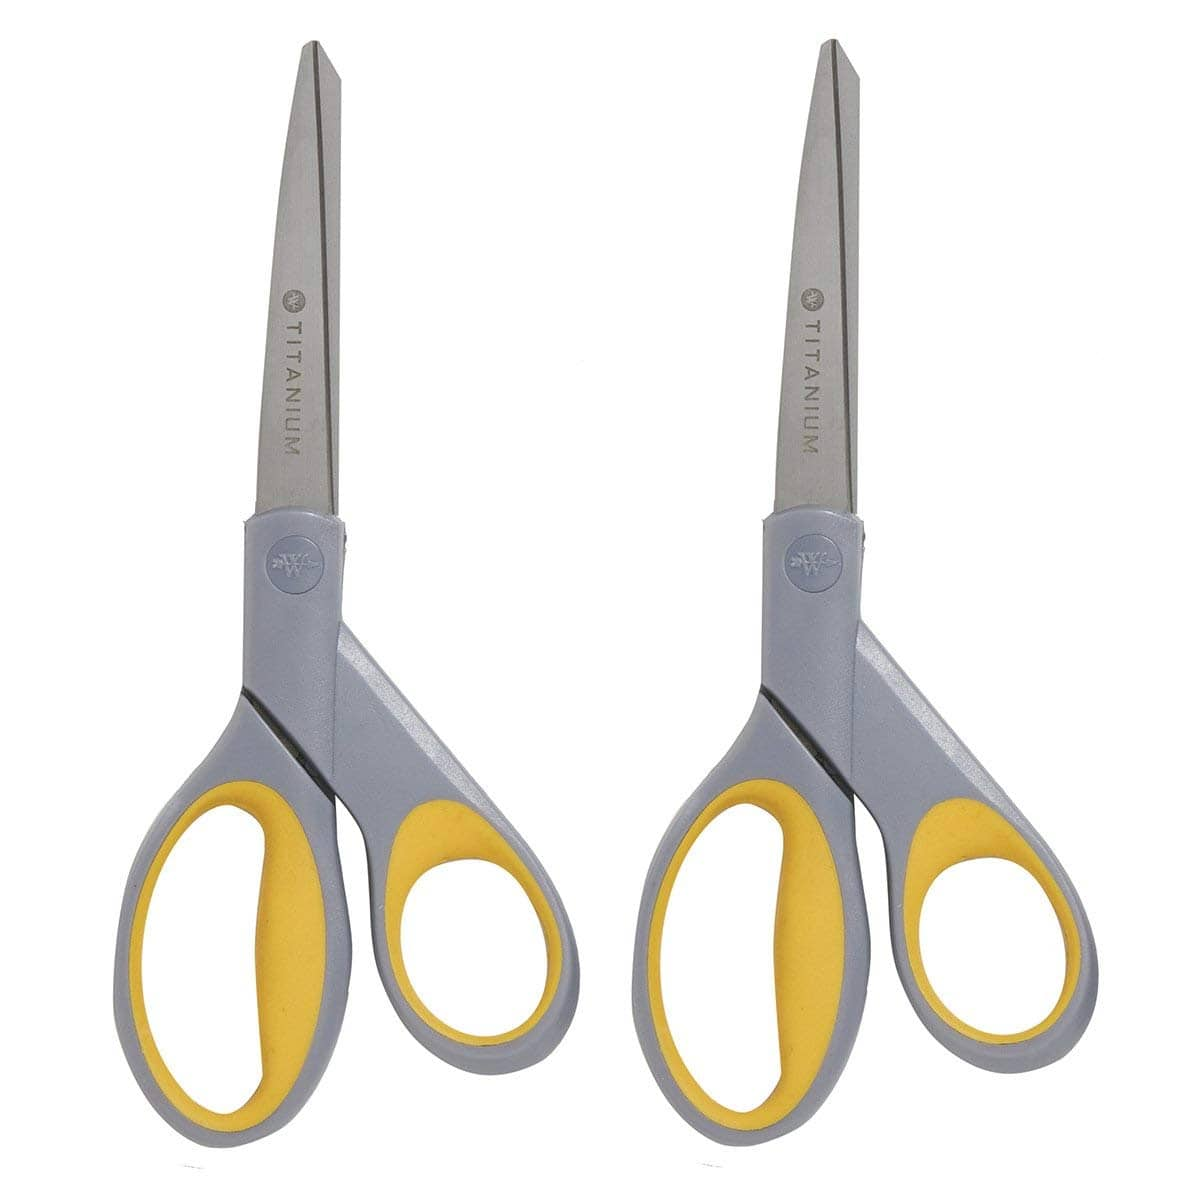 "Westcott 13901 8"" Straight Titanium Bonded Scissors, Grey/Yellow, 2 Per Pack - $6+FS (Add-On)"